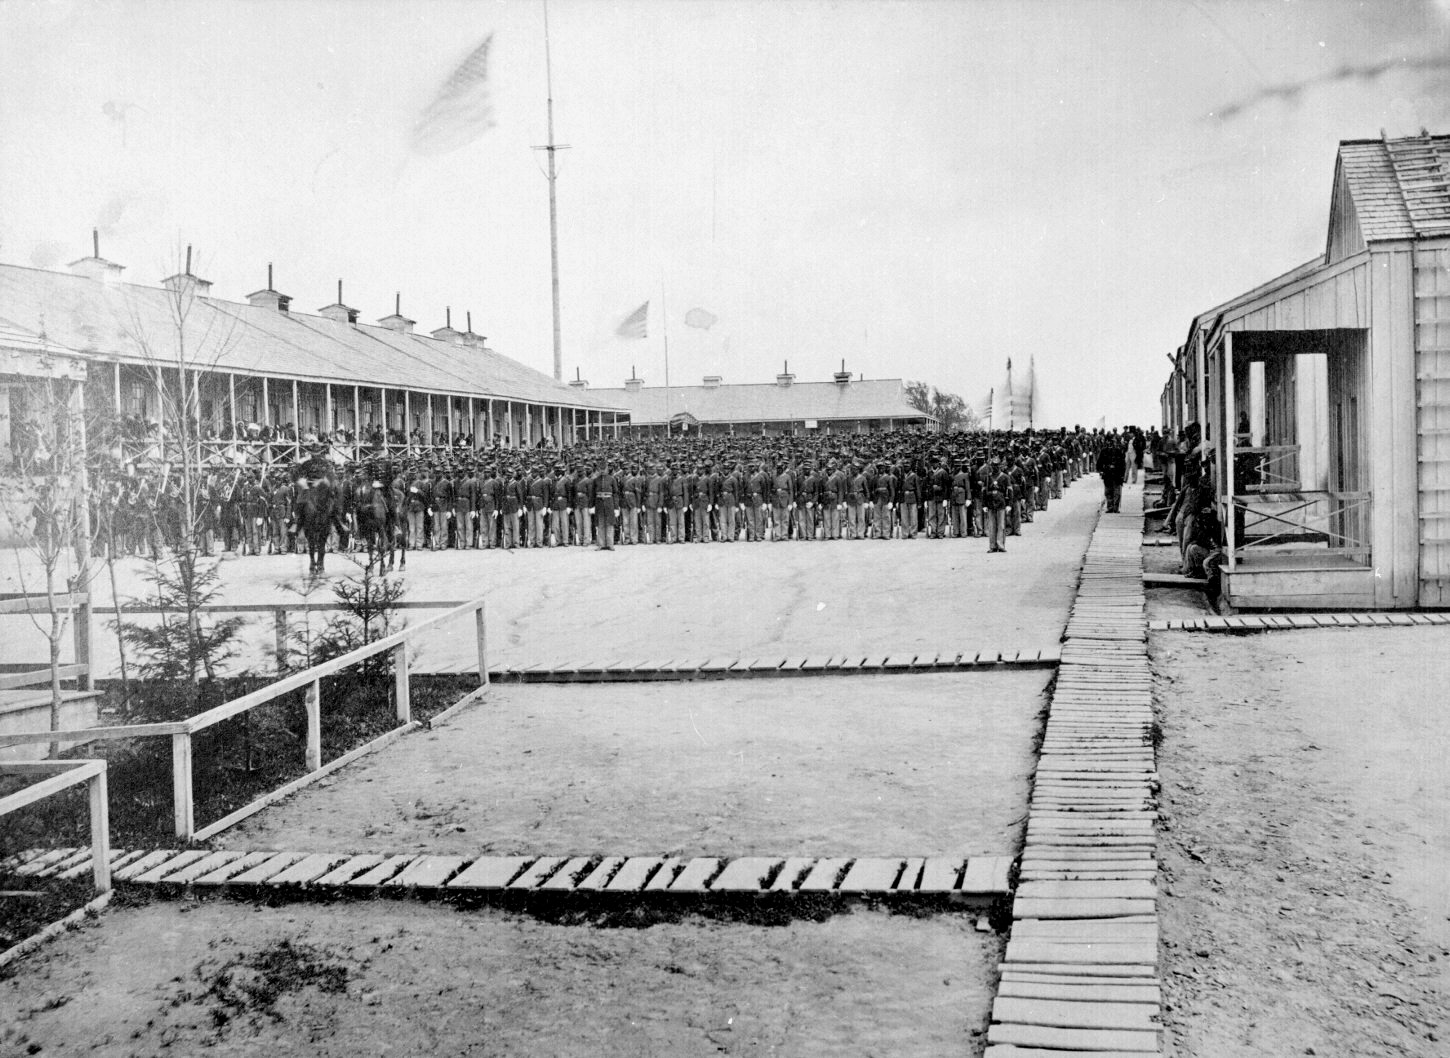 The 26th U.S. Colored Volunteer Infantry on parade, Camp William Penn, Pennsylvania, 1865.